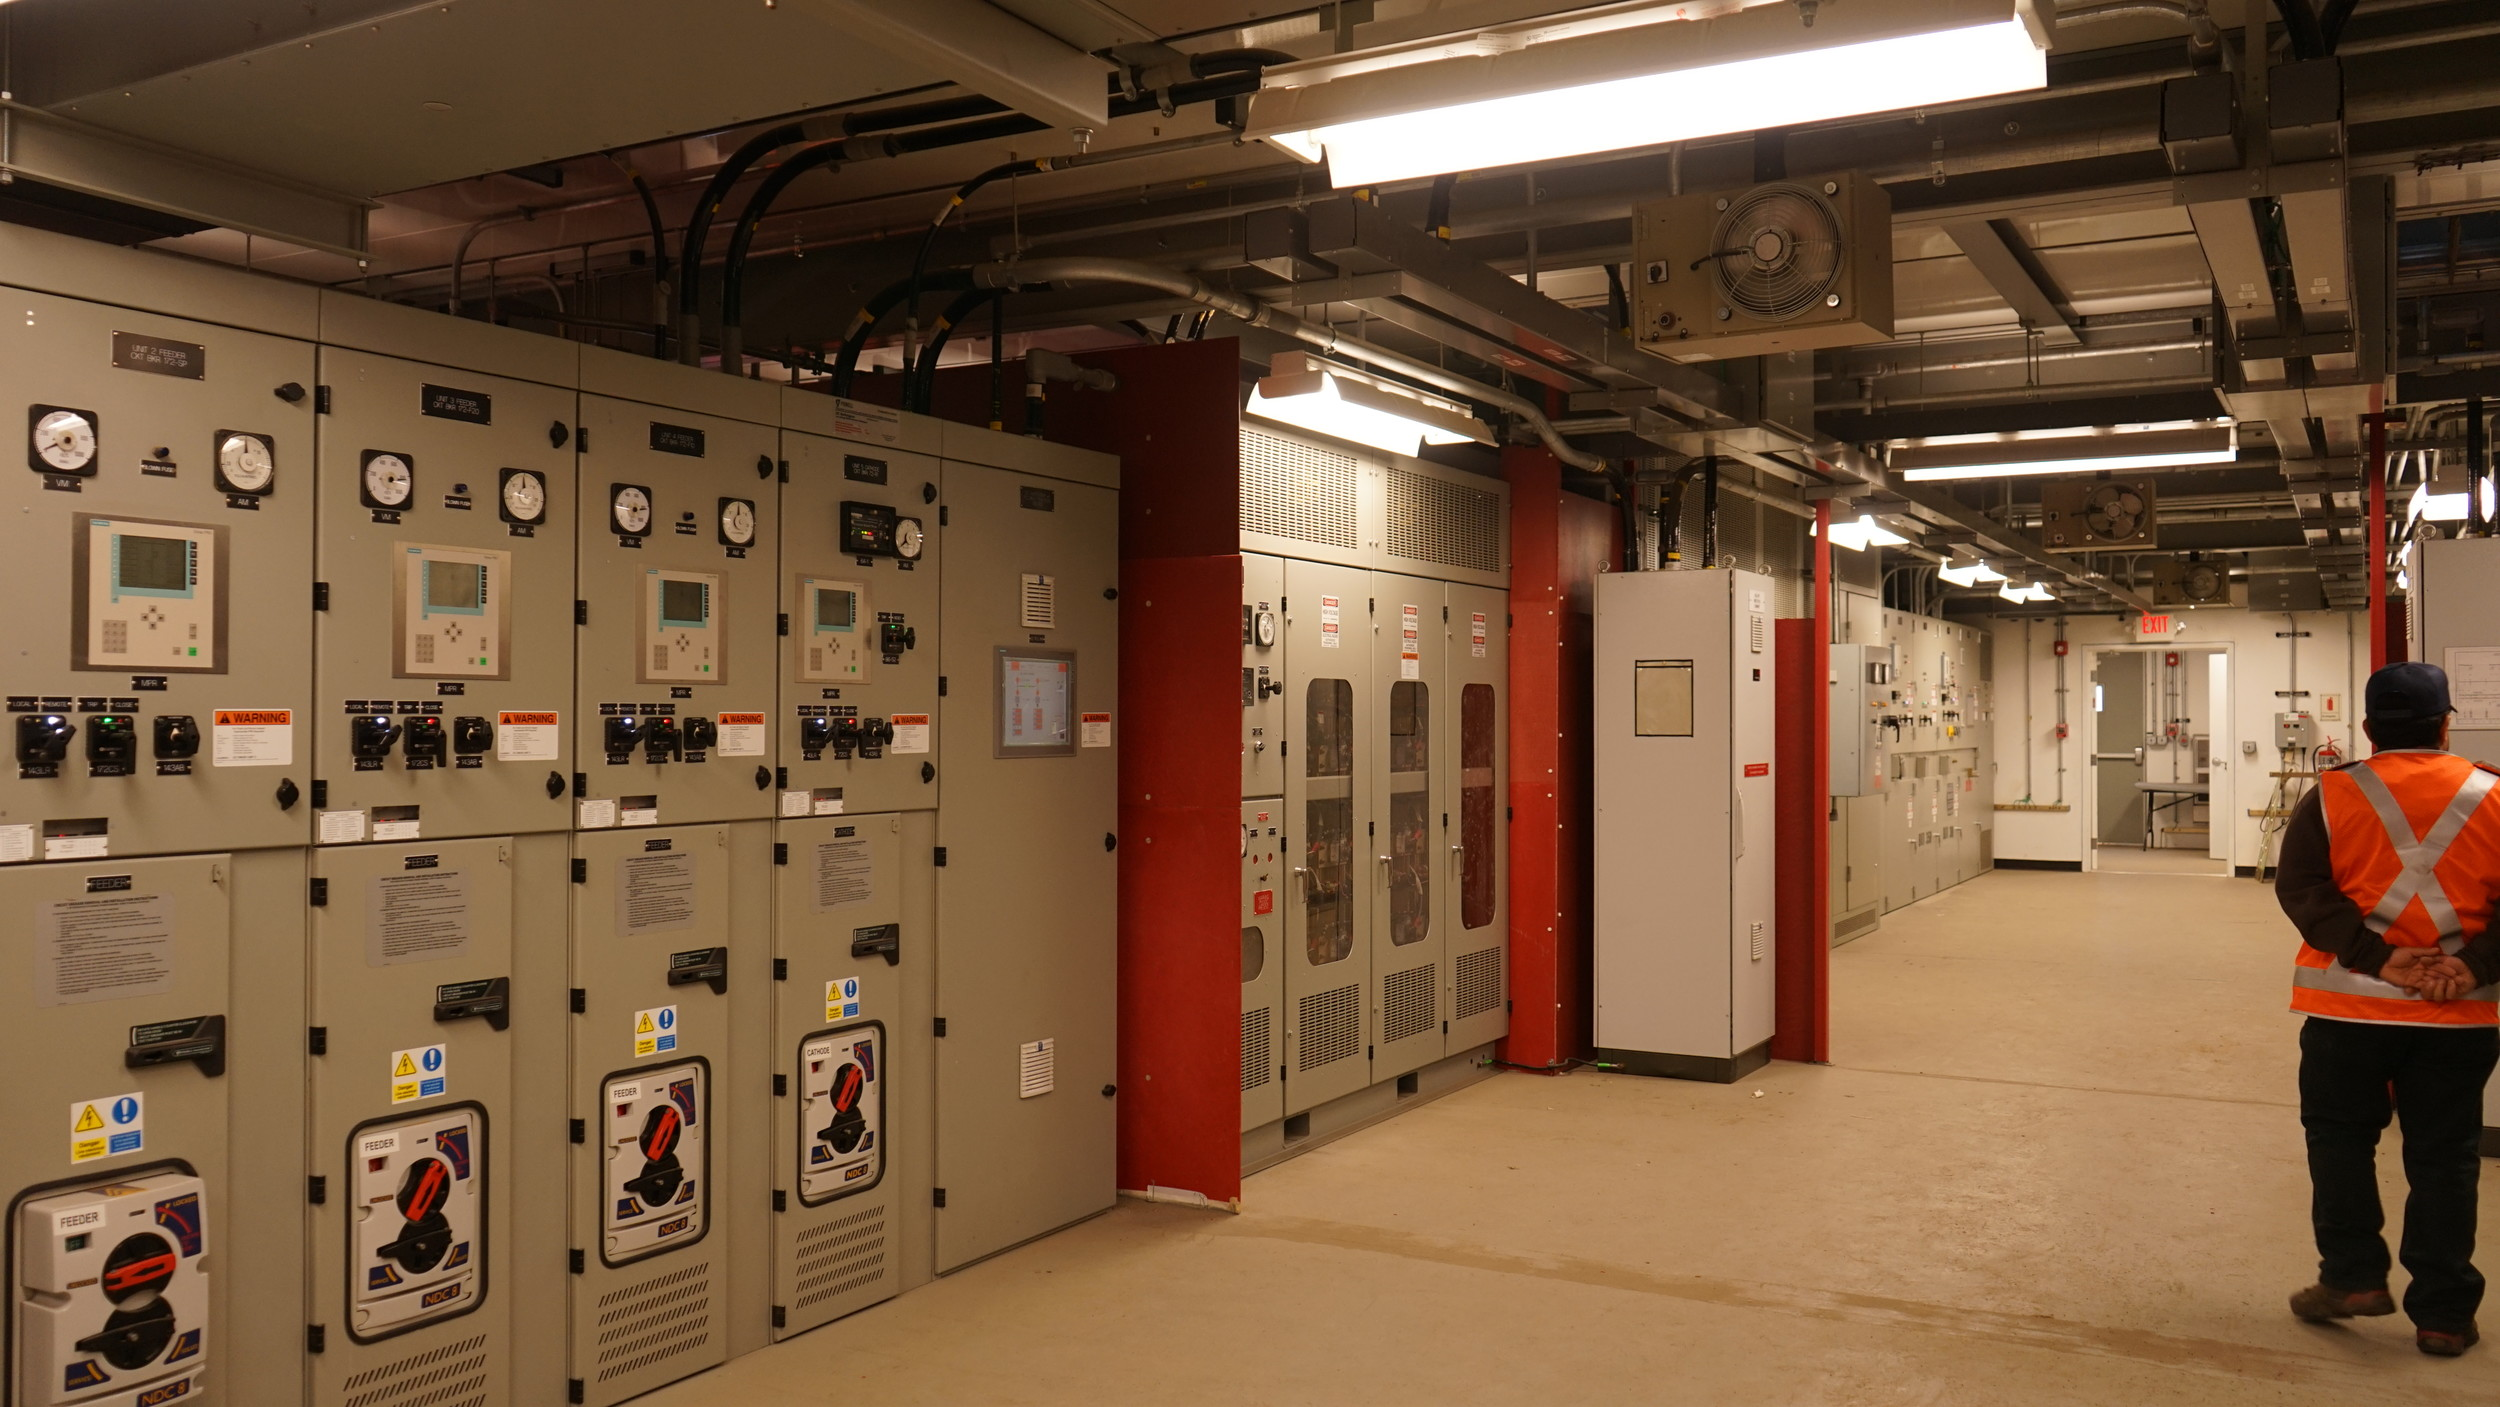 A rare look inside one of the newly constructed substations that supplies electricity to the trains. The one pictured can be found at Oil City in Oceanside.